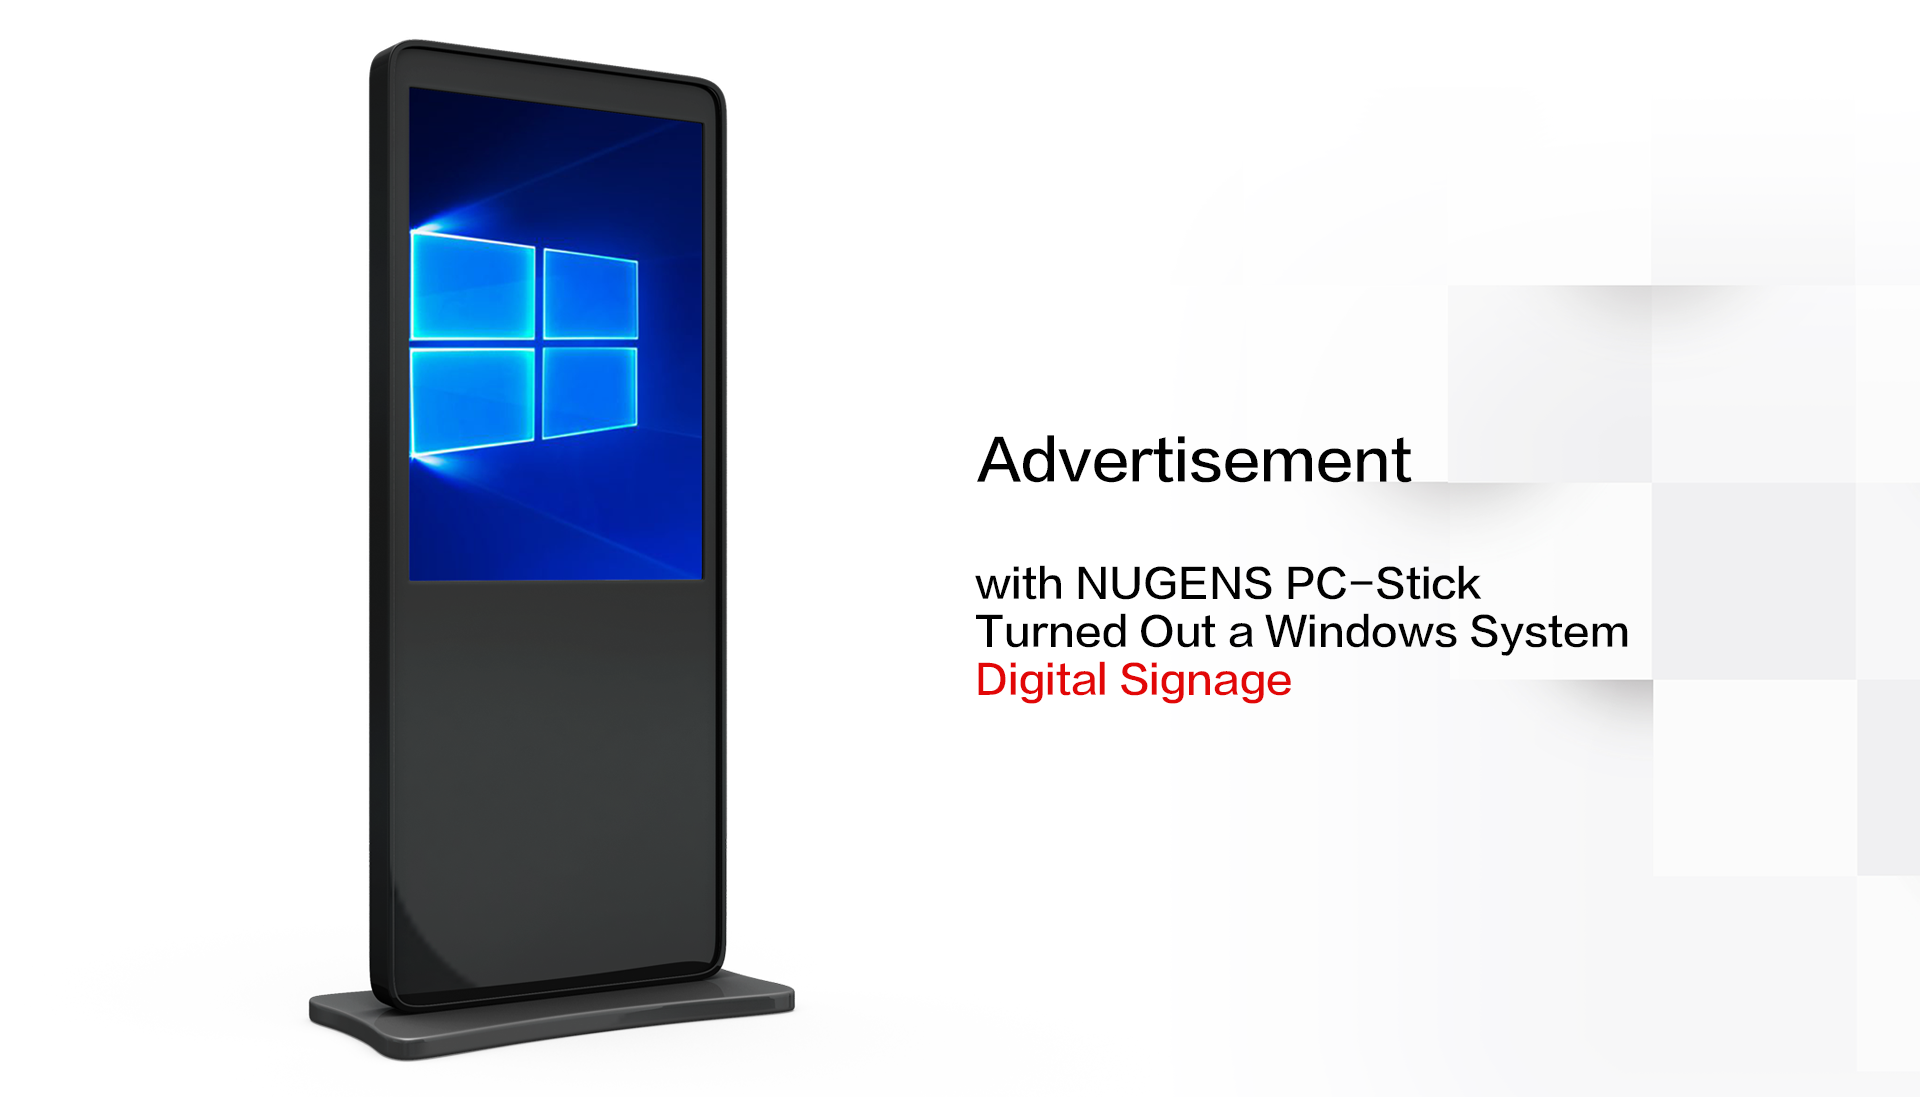 with NUGENS PC-Stick,Turned Out a Windows System Digital Signage